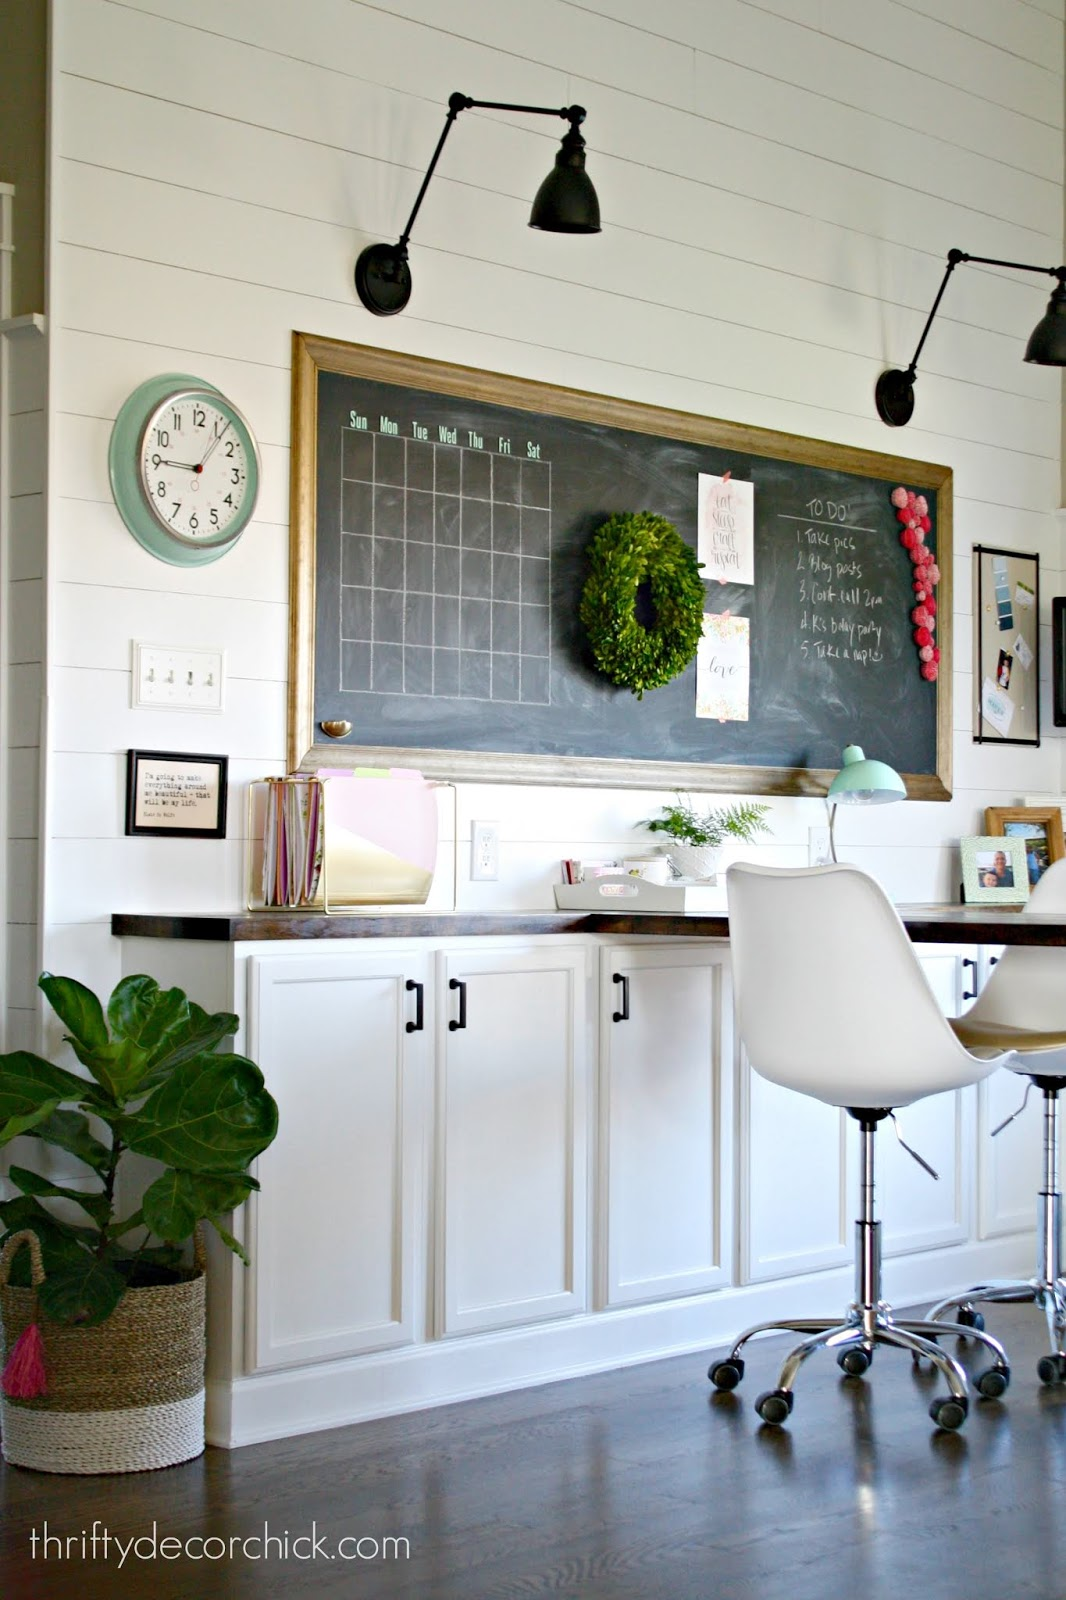 Step by step shiplap tutorial